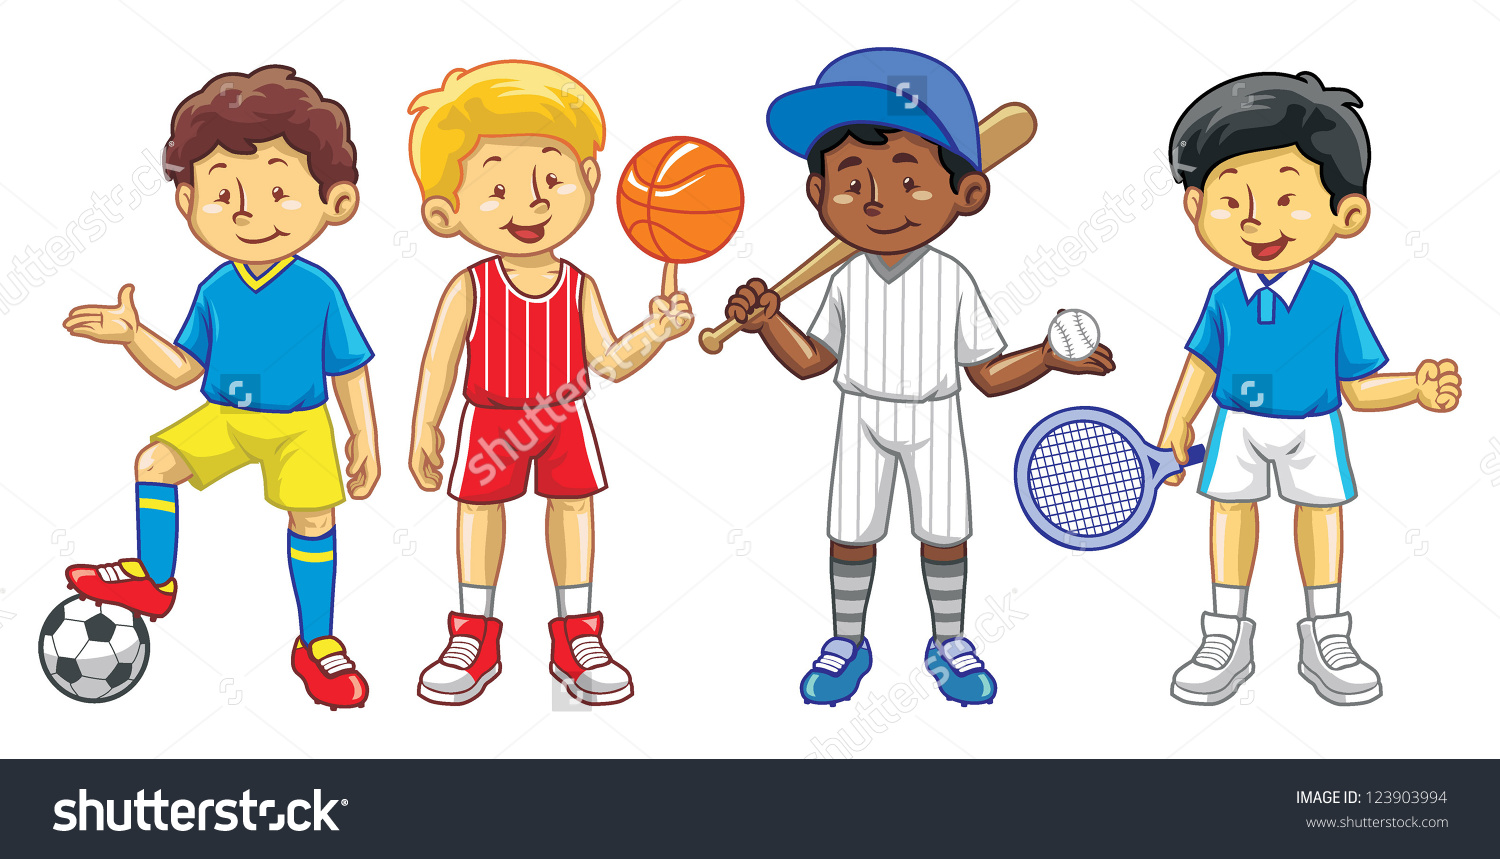 Sport activity clipart clipground for Sports clipart